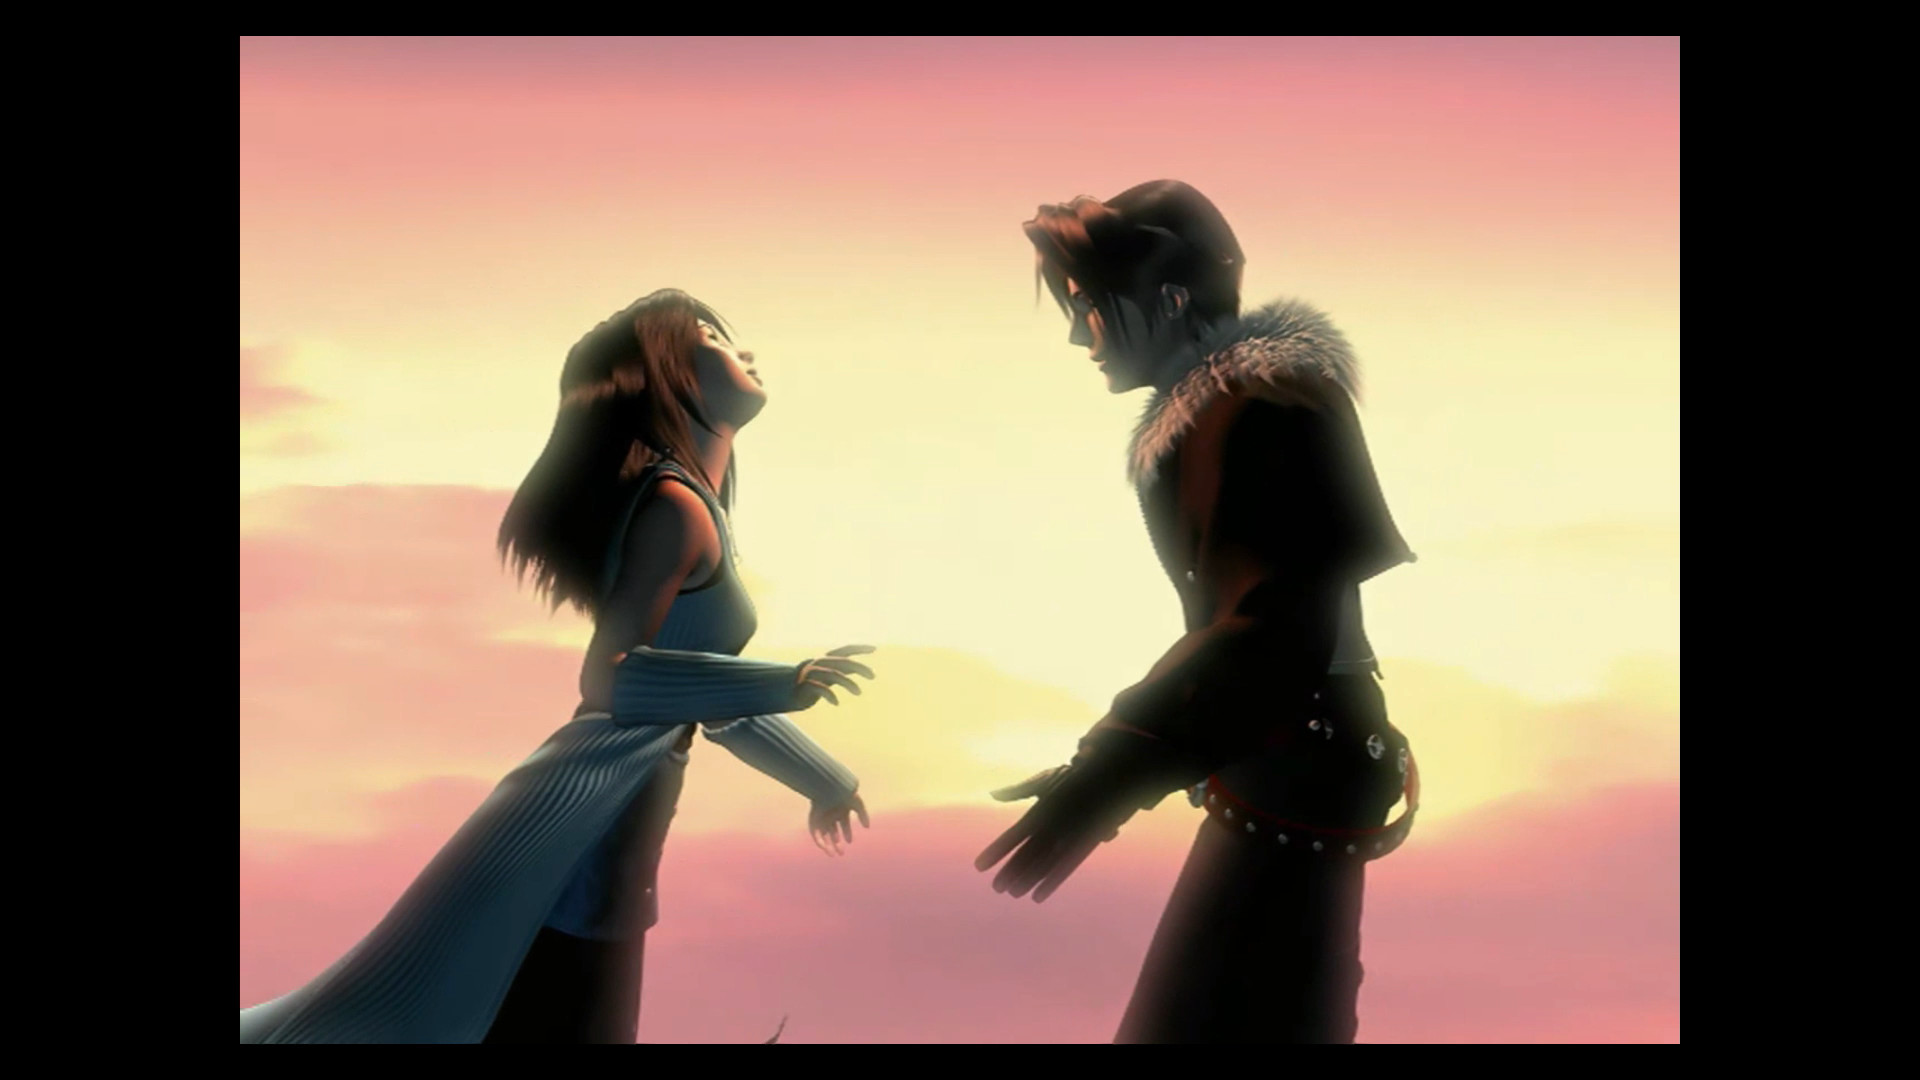 Final Fantasy 8 Remastered - Squall and Rinoa approach each other against a sunset for an embrace.